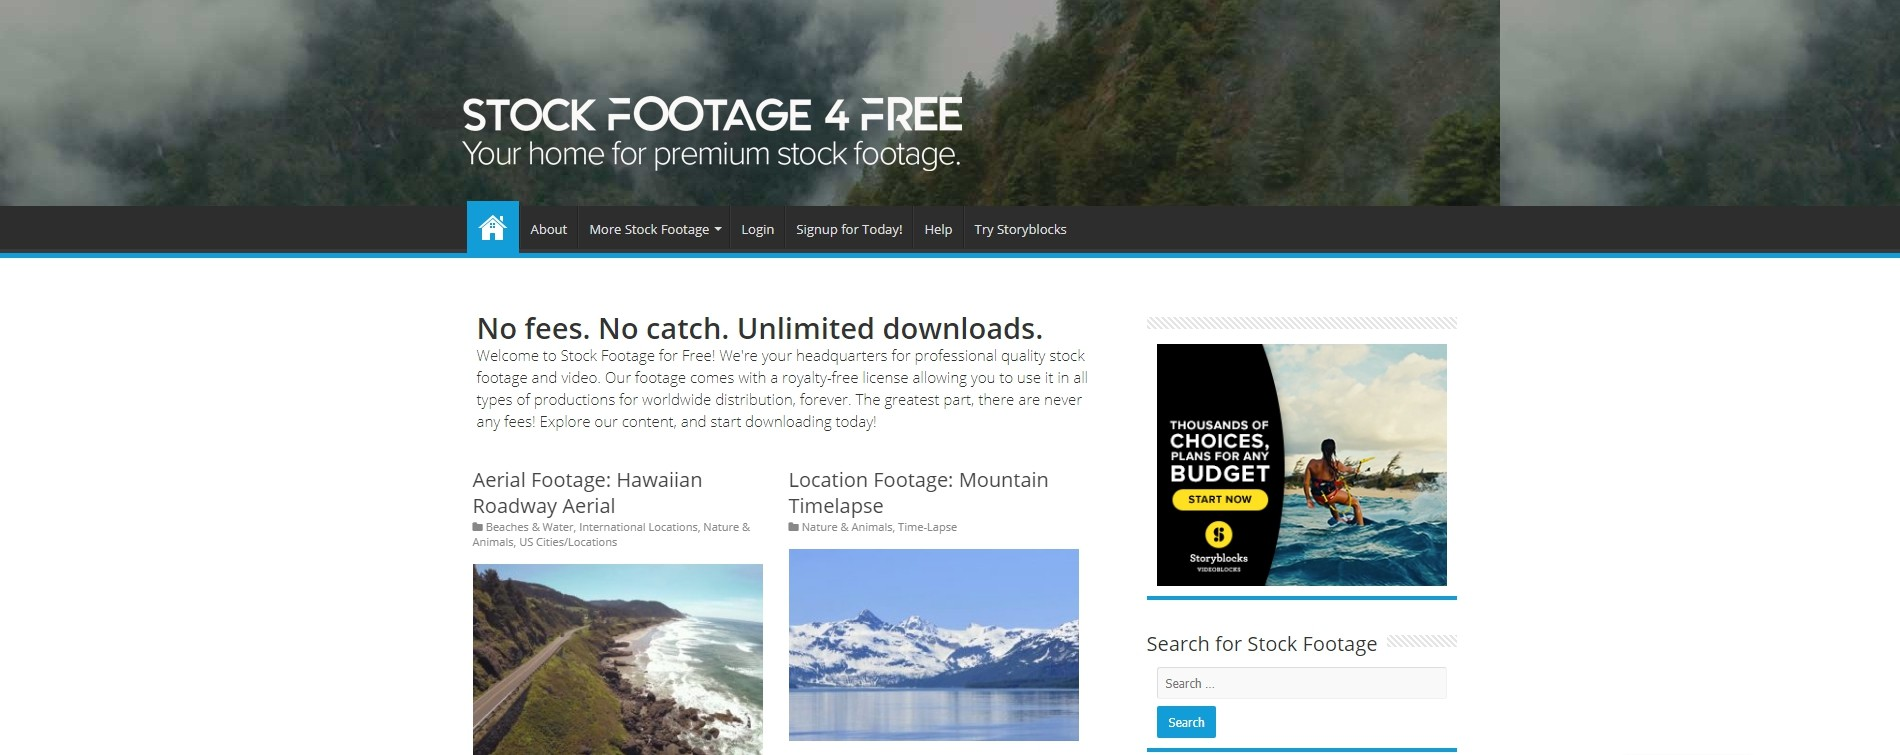 Stock Footage For Free - Stock Footage For Free